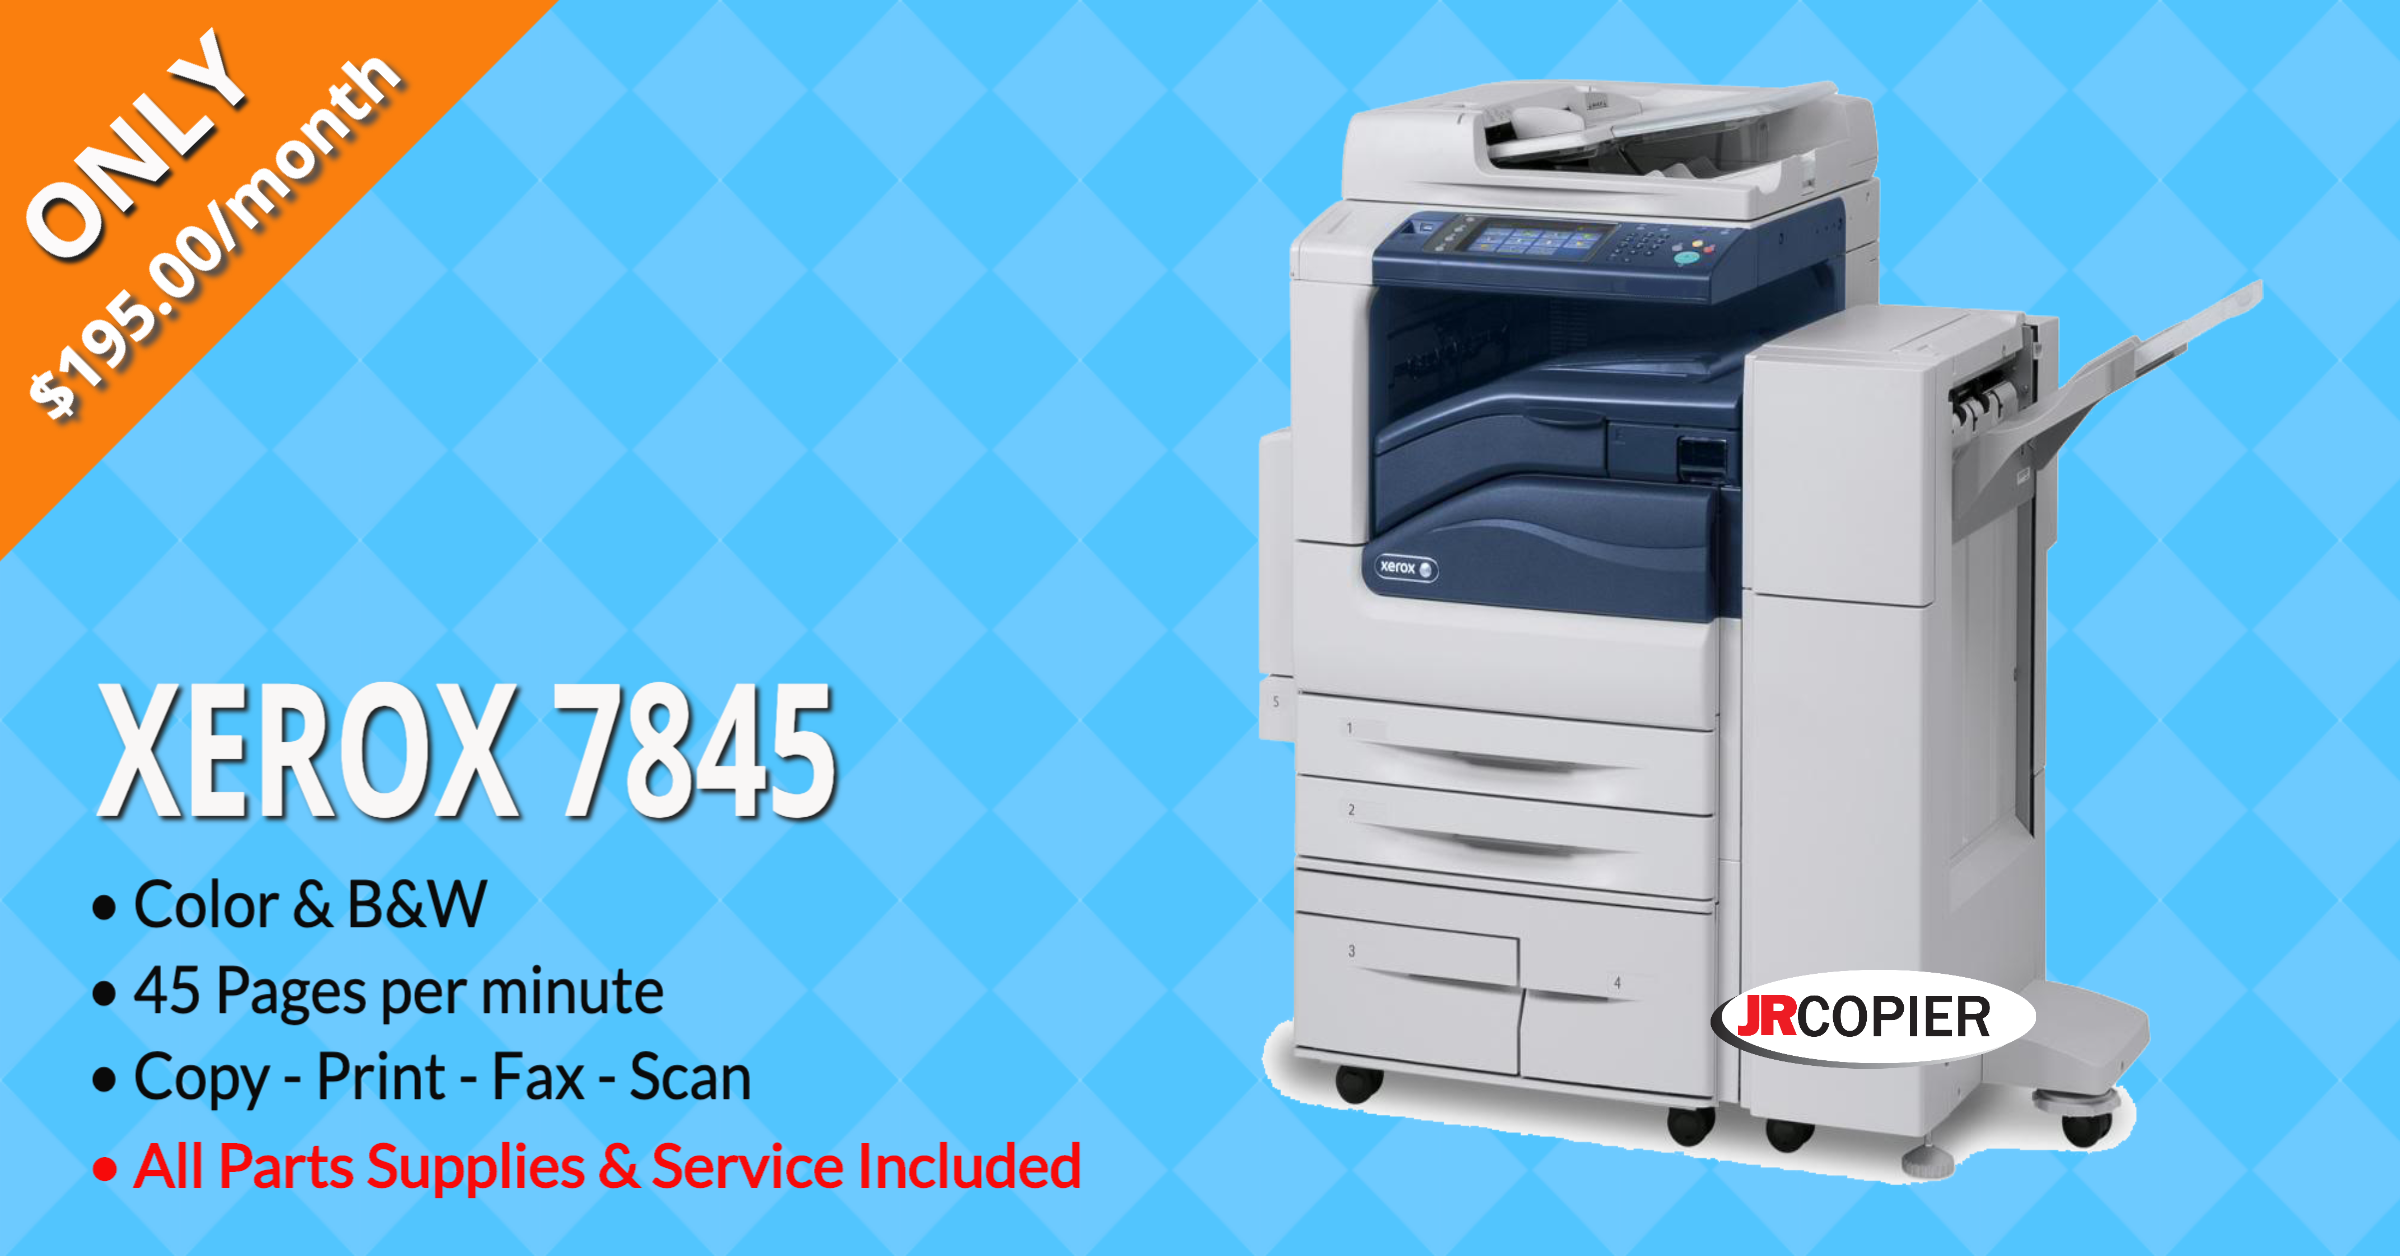 Copy Machine Companies 13021, 13022, 13024